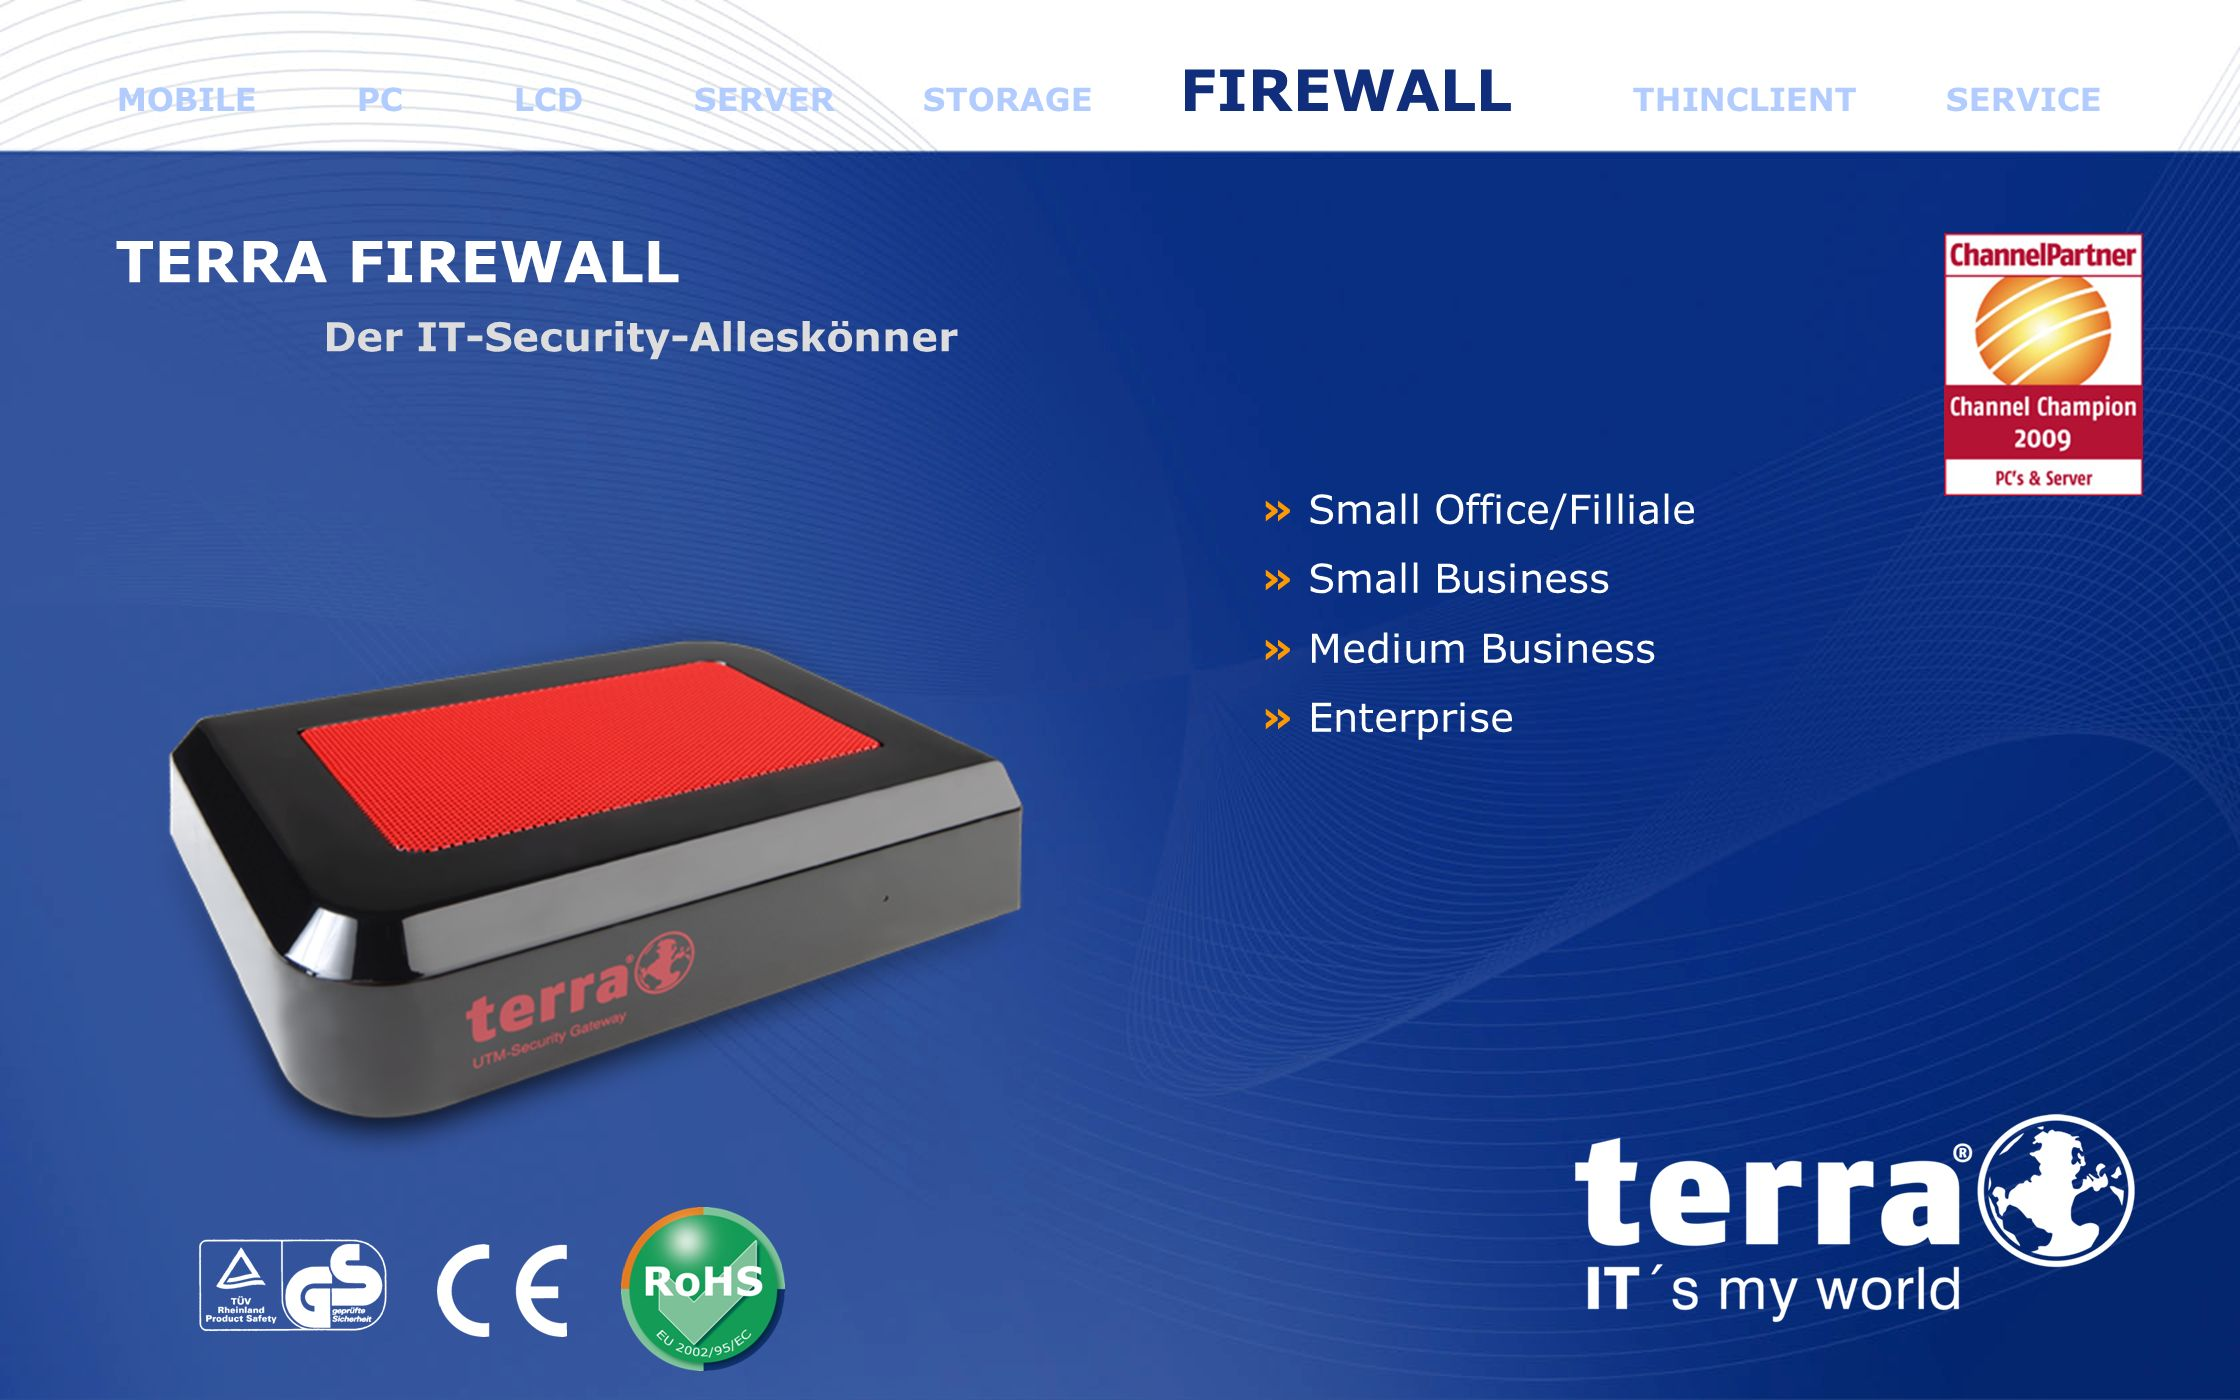 www.wortmann.de » Small Office/Filliale » Small Business » Medium Business » Enterprise TERRA FIREWALL Der IT-Security-Alleskönner MOBILE PC LCD SERVE